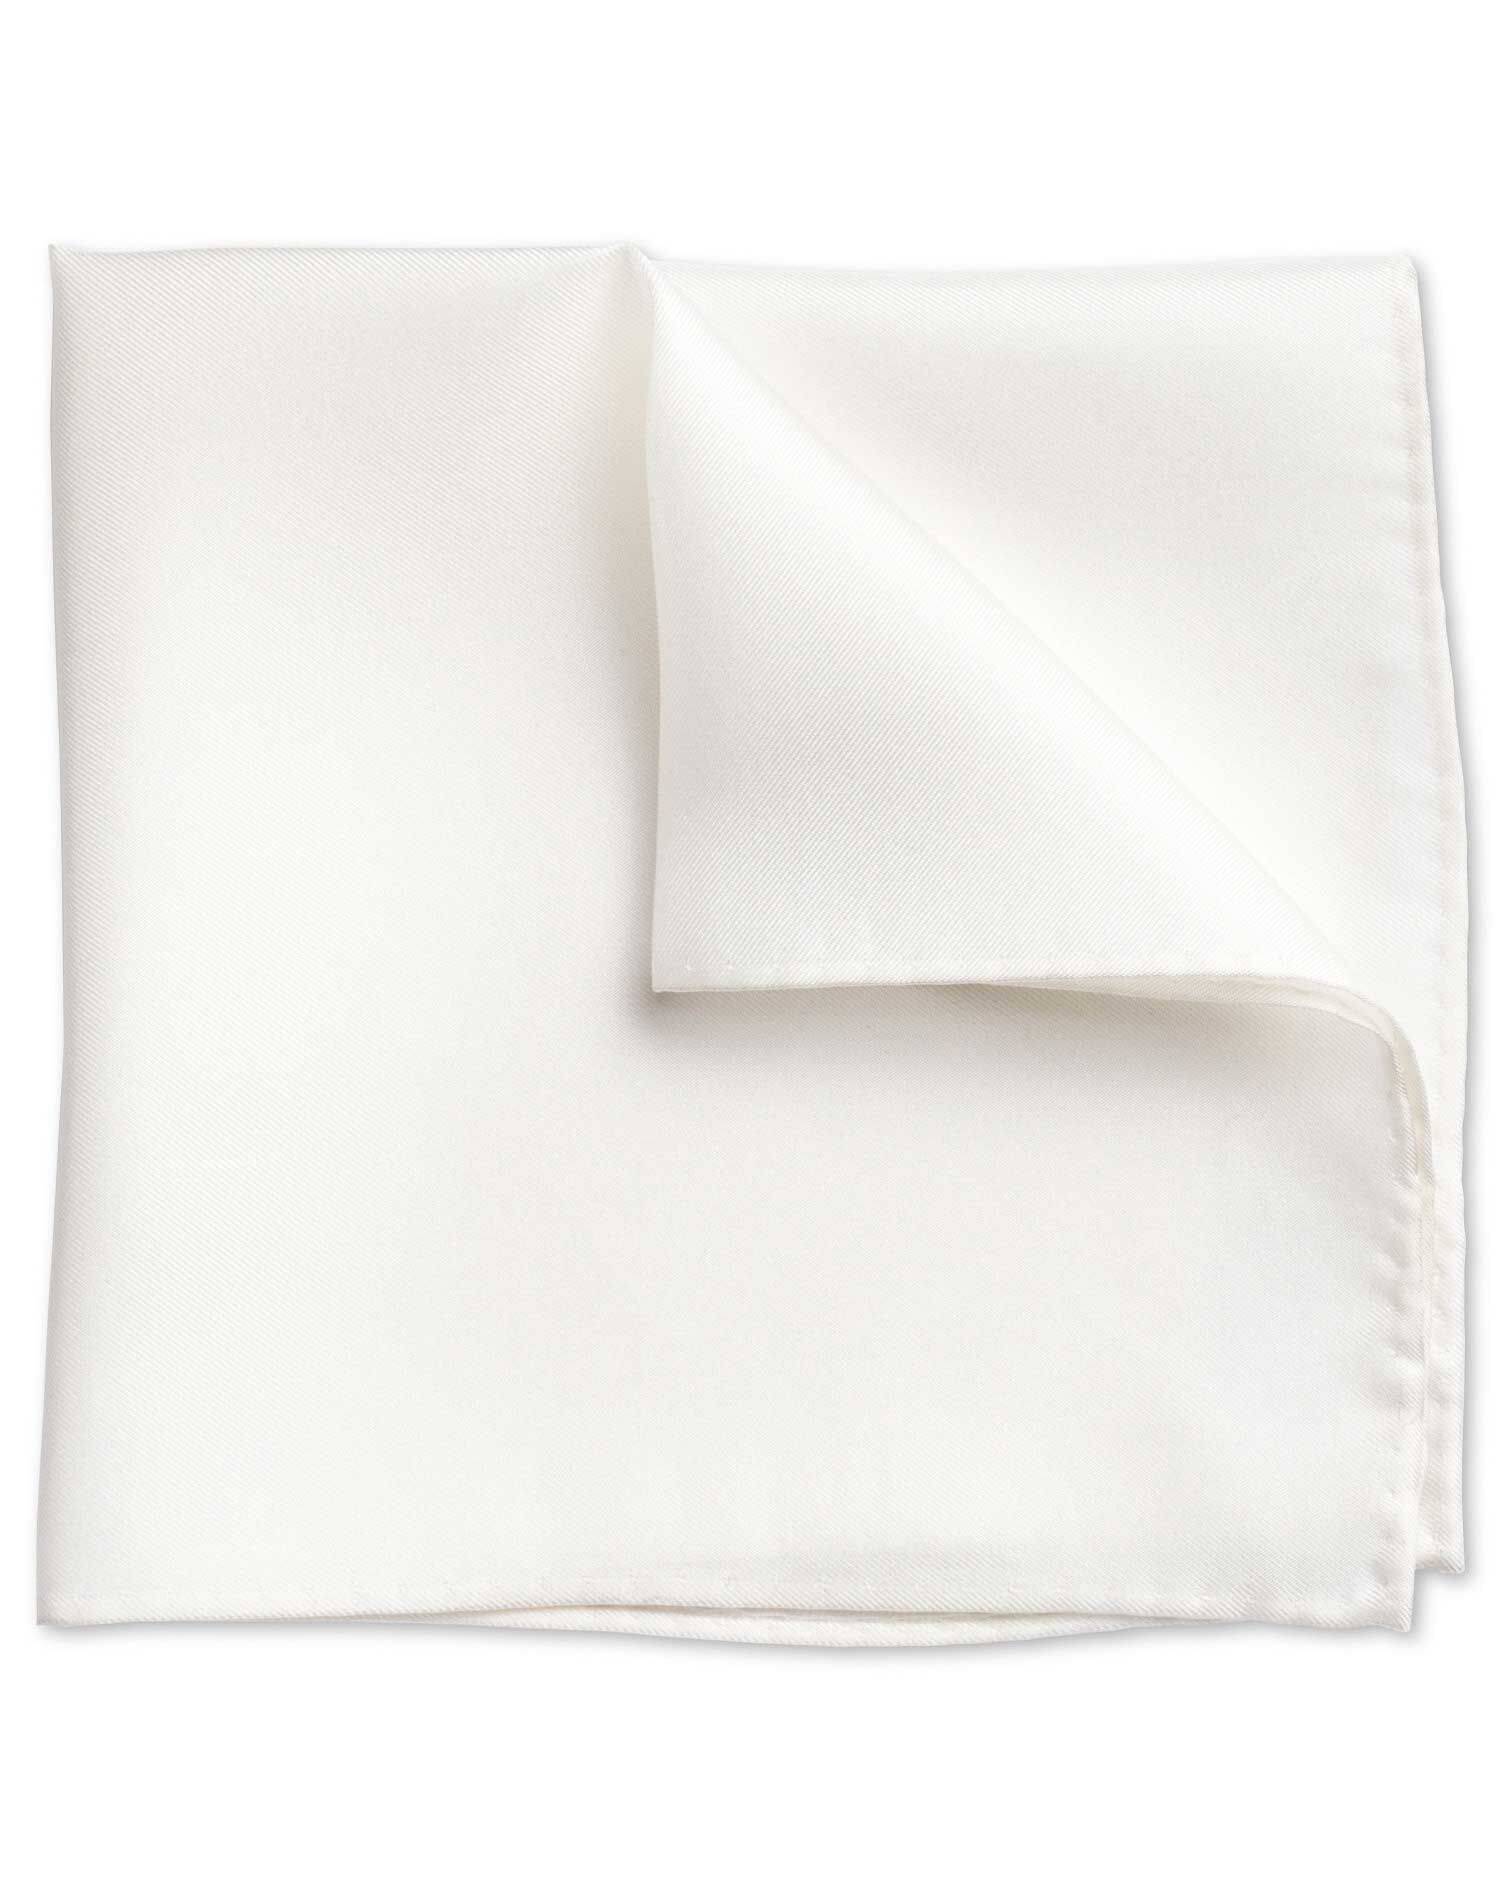 White Evening Silk Pocket Square Size OSFA by Charles Tyrwhitt